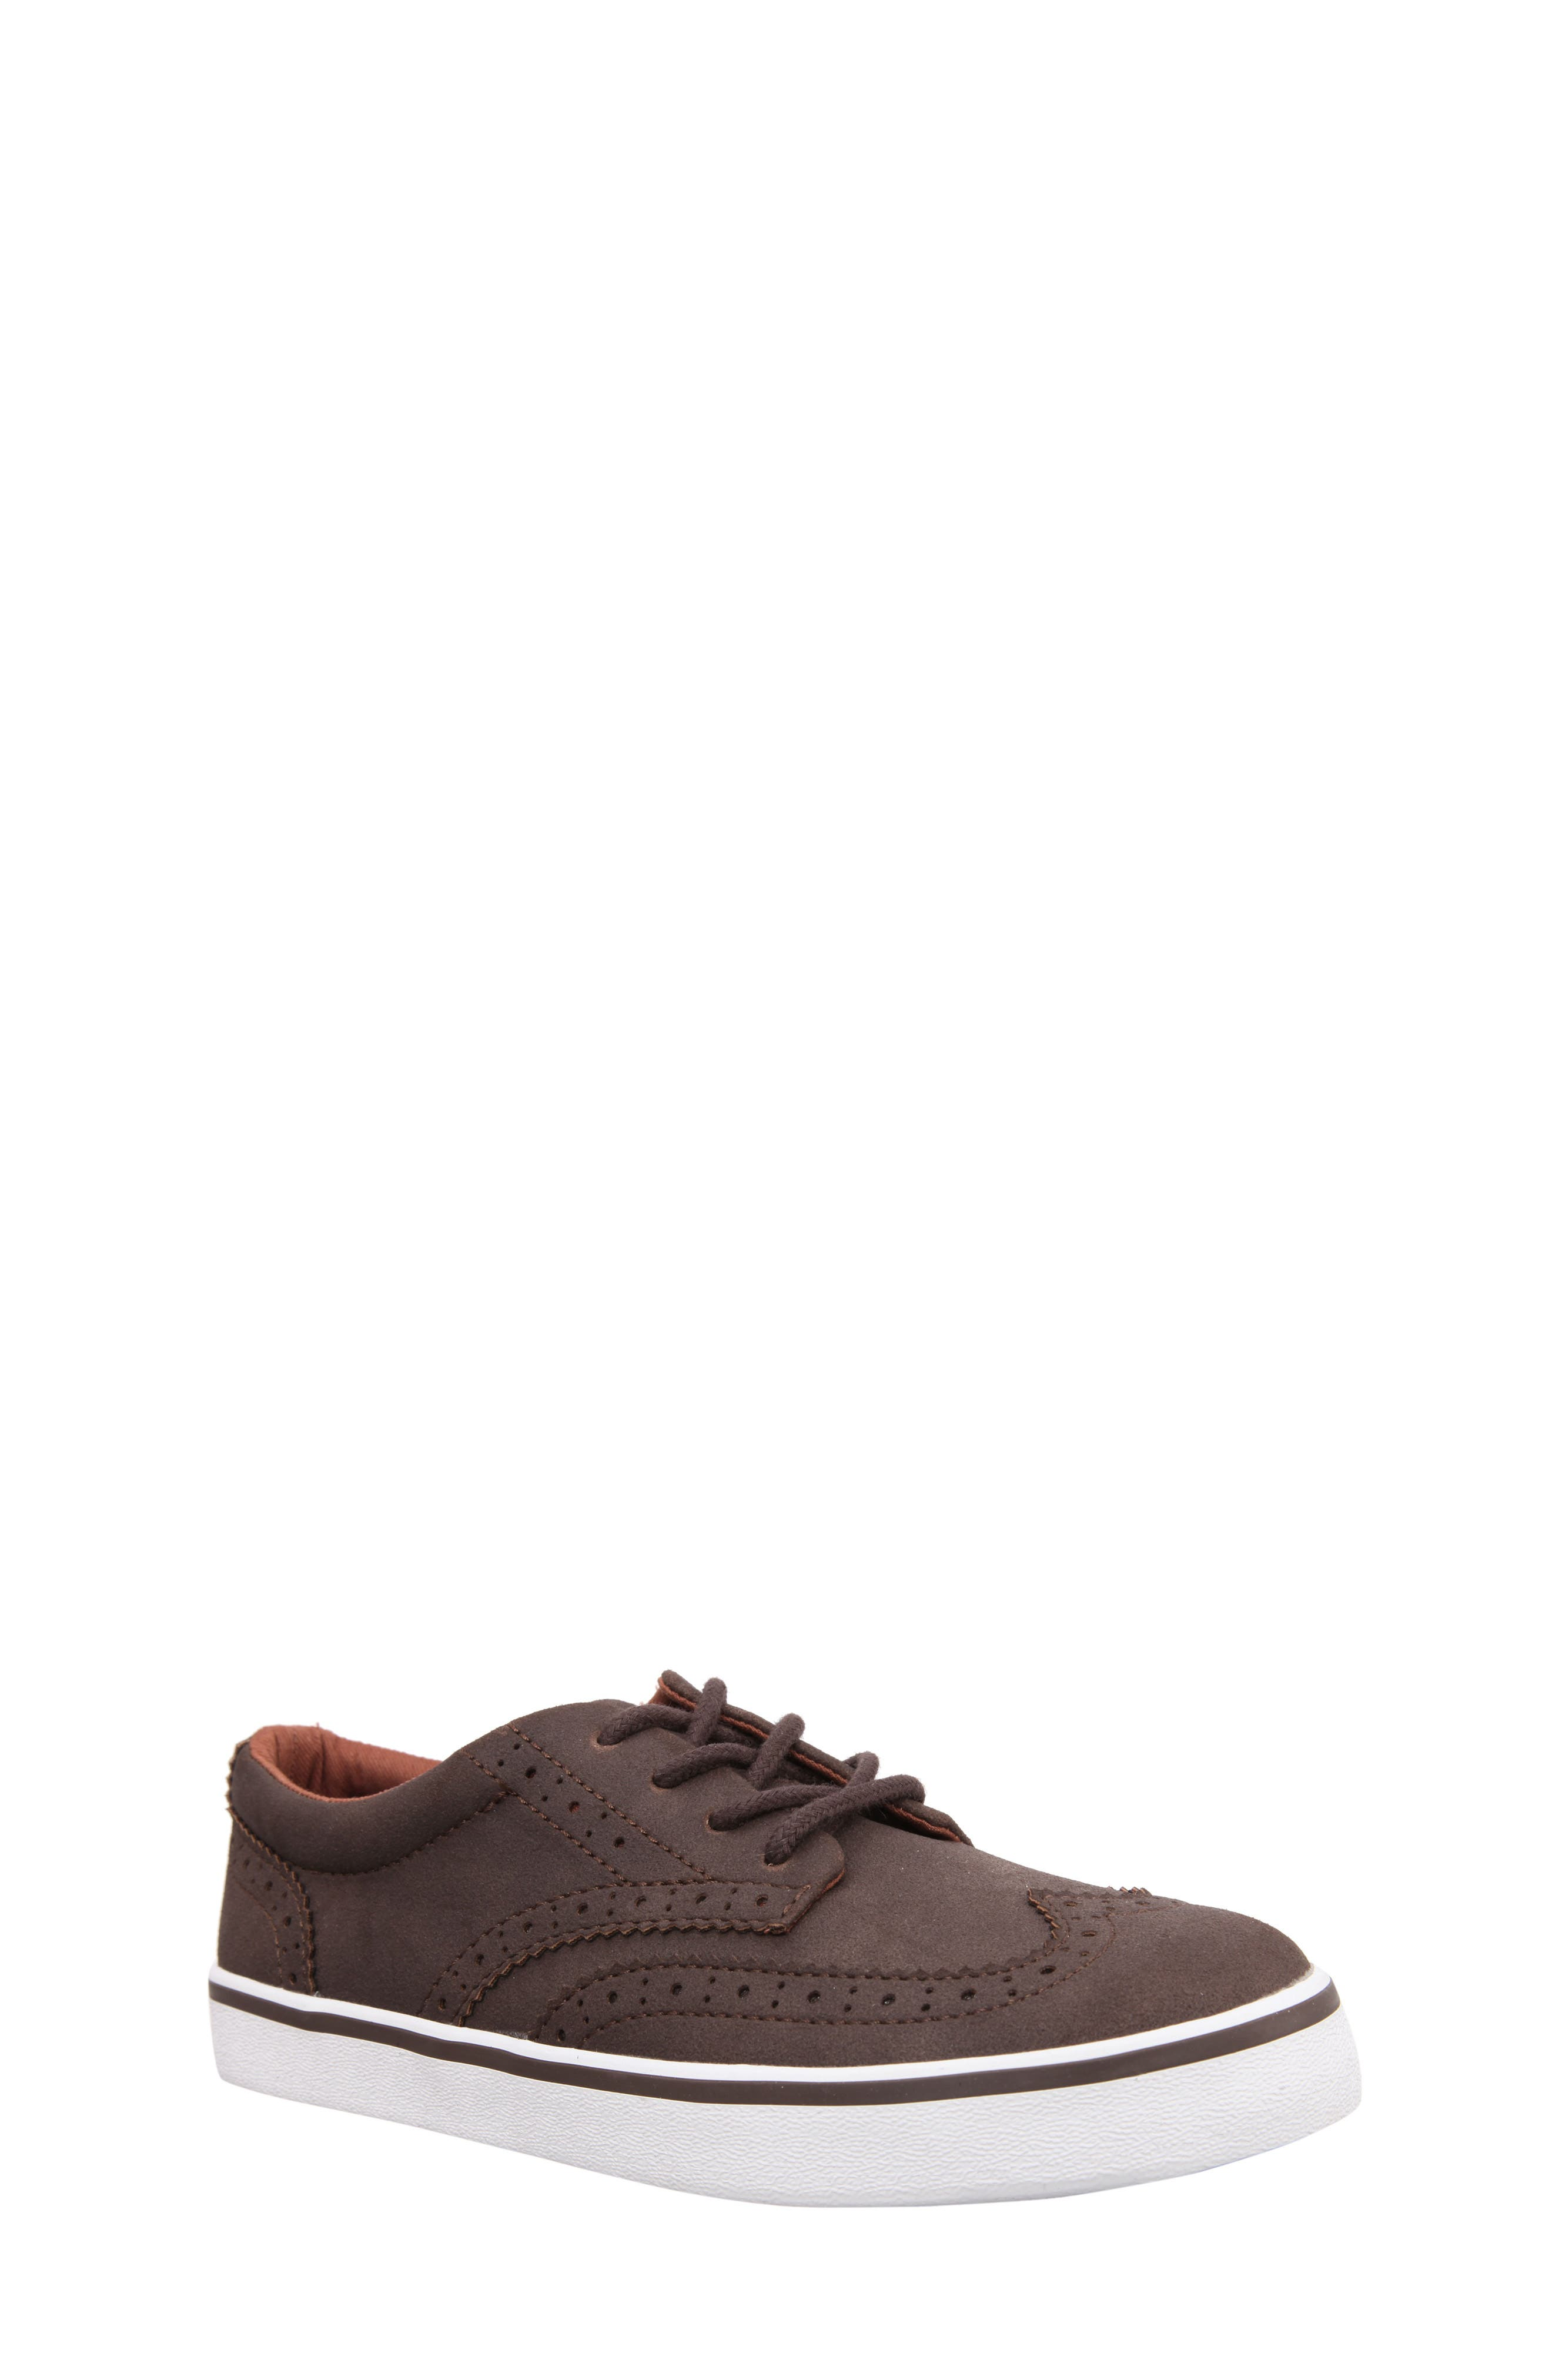 Wingtip Sneaker,                             Main thumbnail 1, color,                             Brown Faux Suede